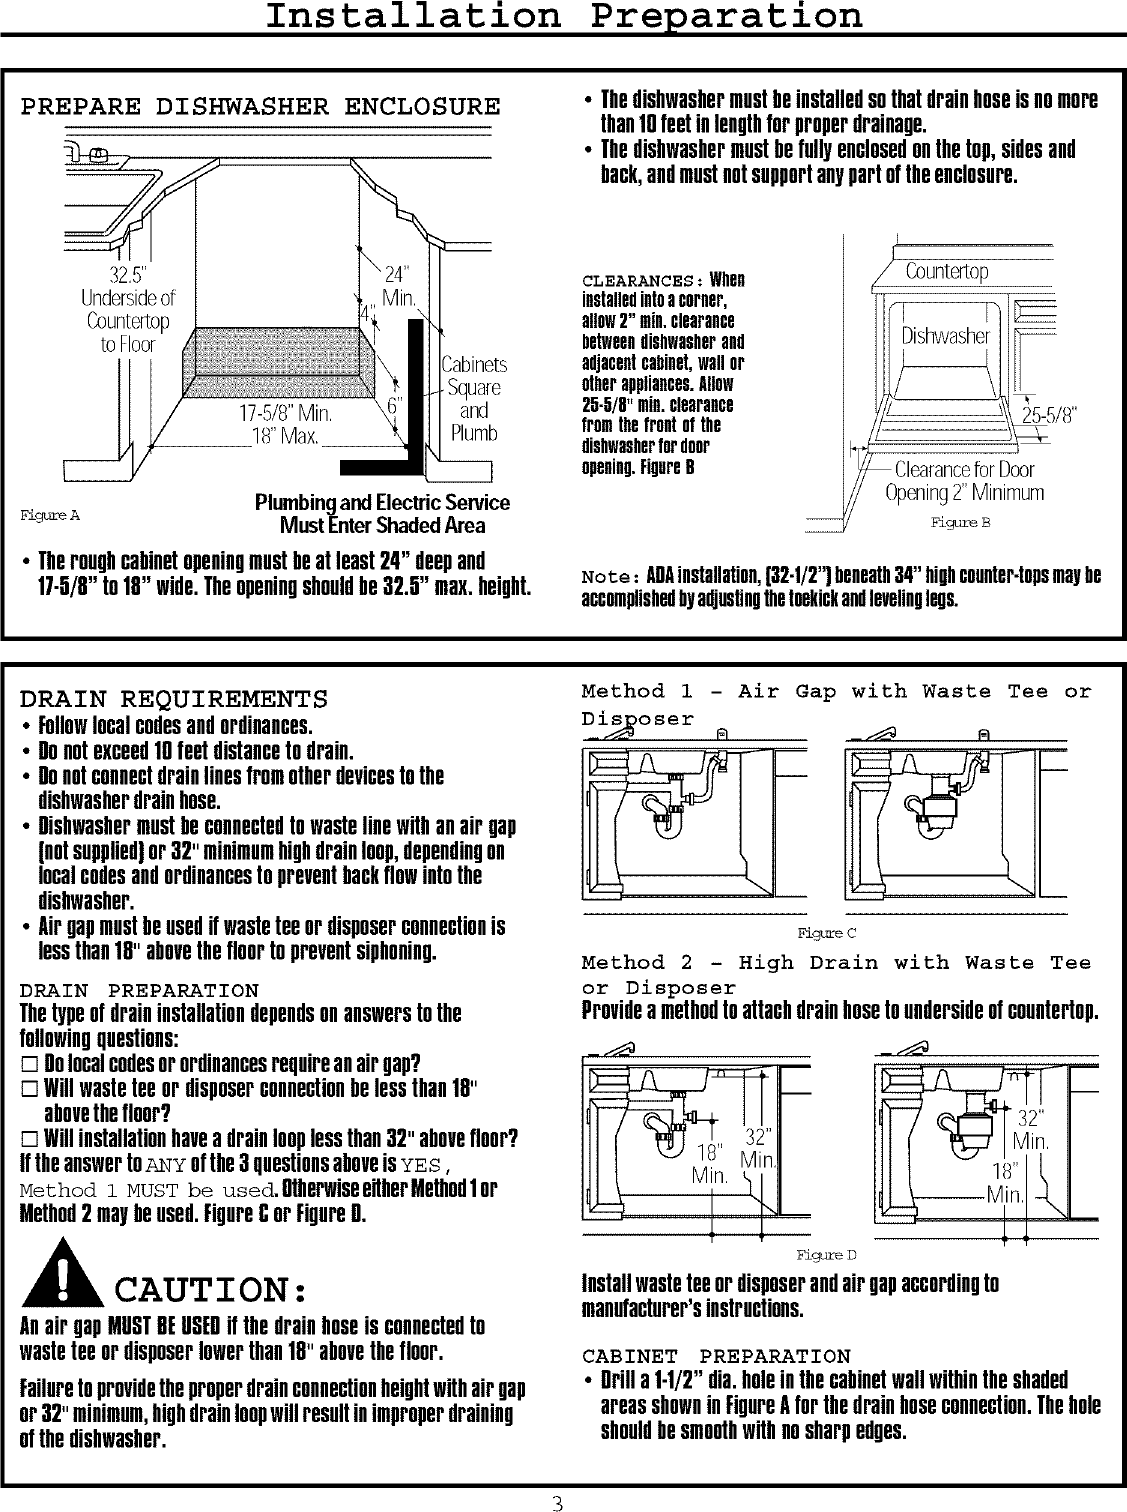 Frigidaire Fmb330rgs0 User Manual Dishwasher Manuals And Guides L0709007 Schematic Diagram Page 3 Of 12